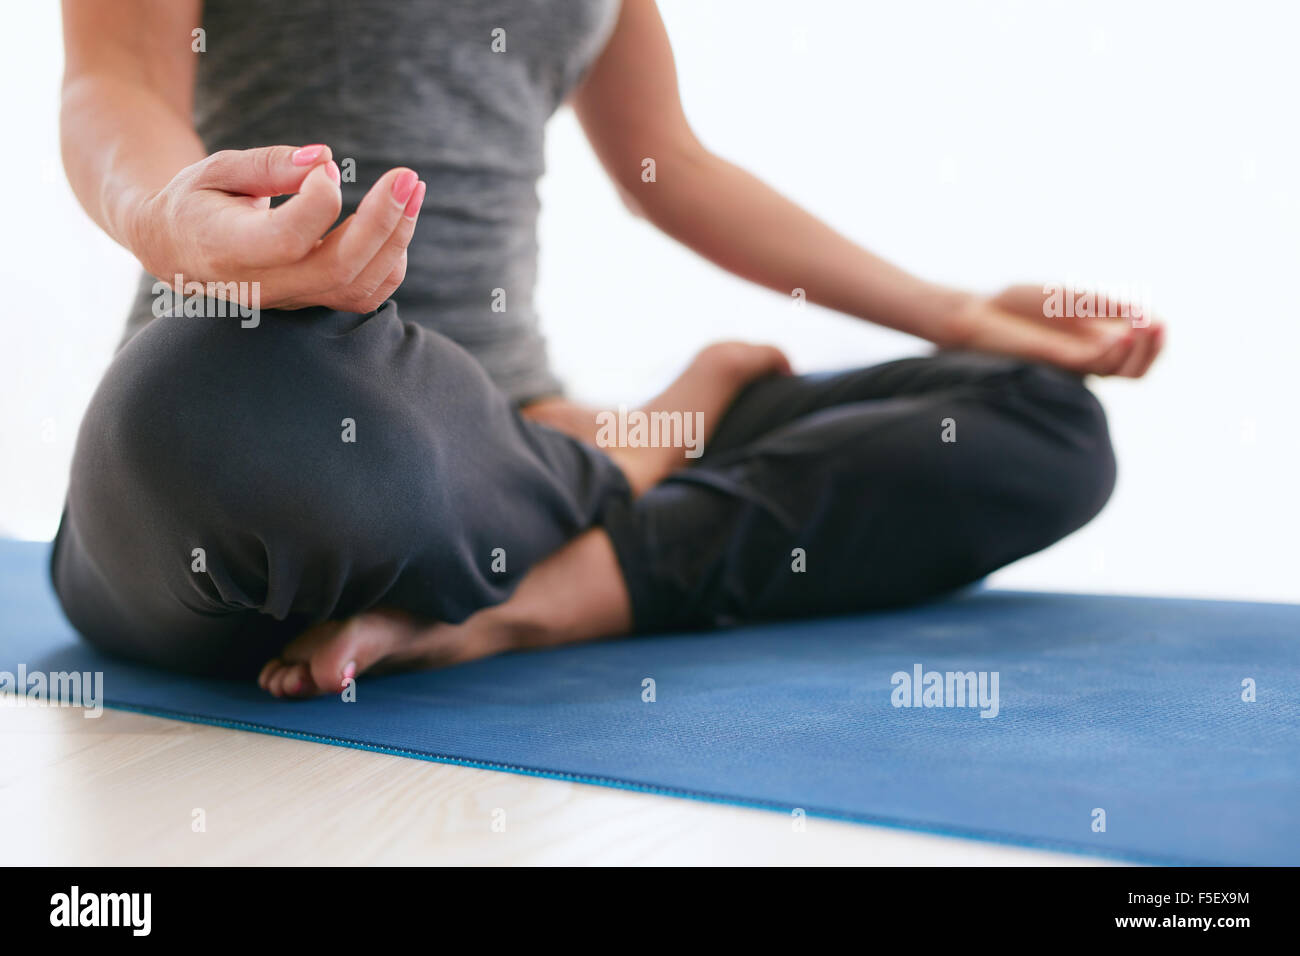 Close up of female sitting cross legged and hands on knees during meditation. Woman sitting in Lotus pose on exercise - Stock Image